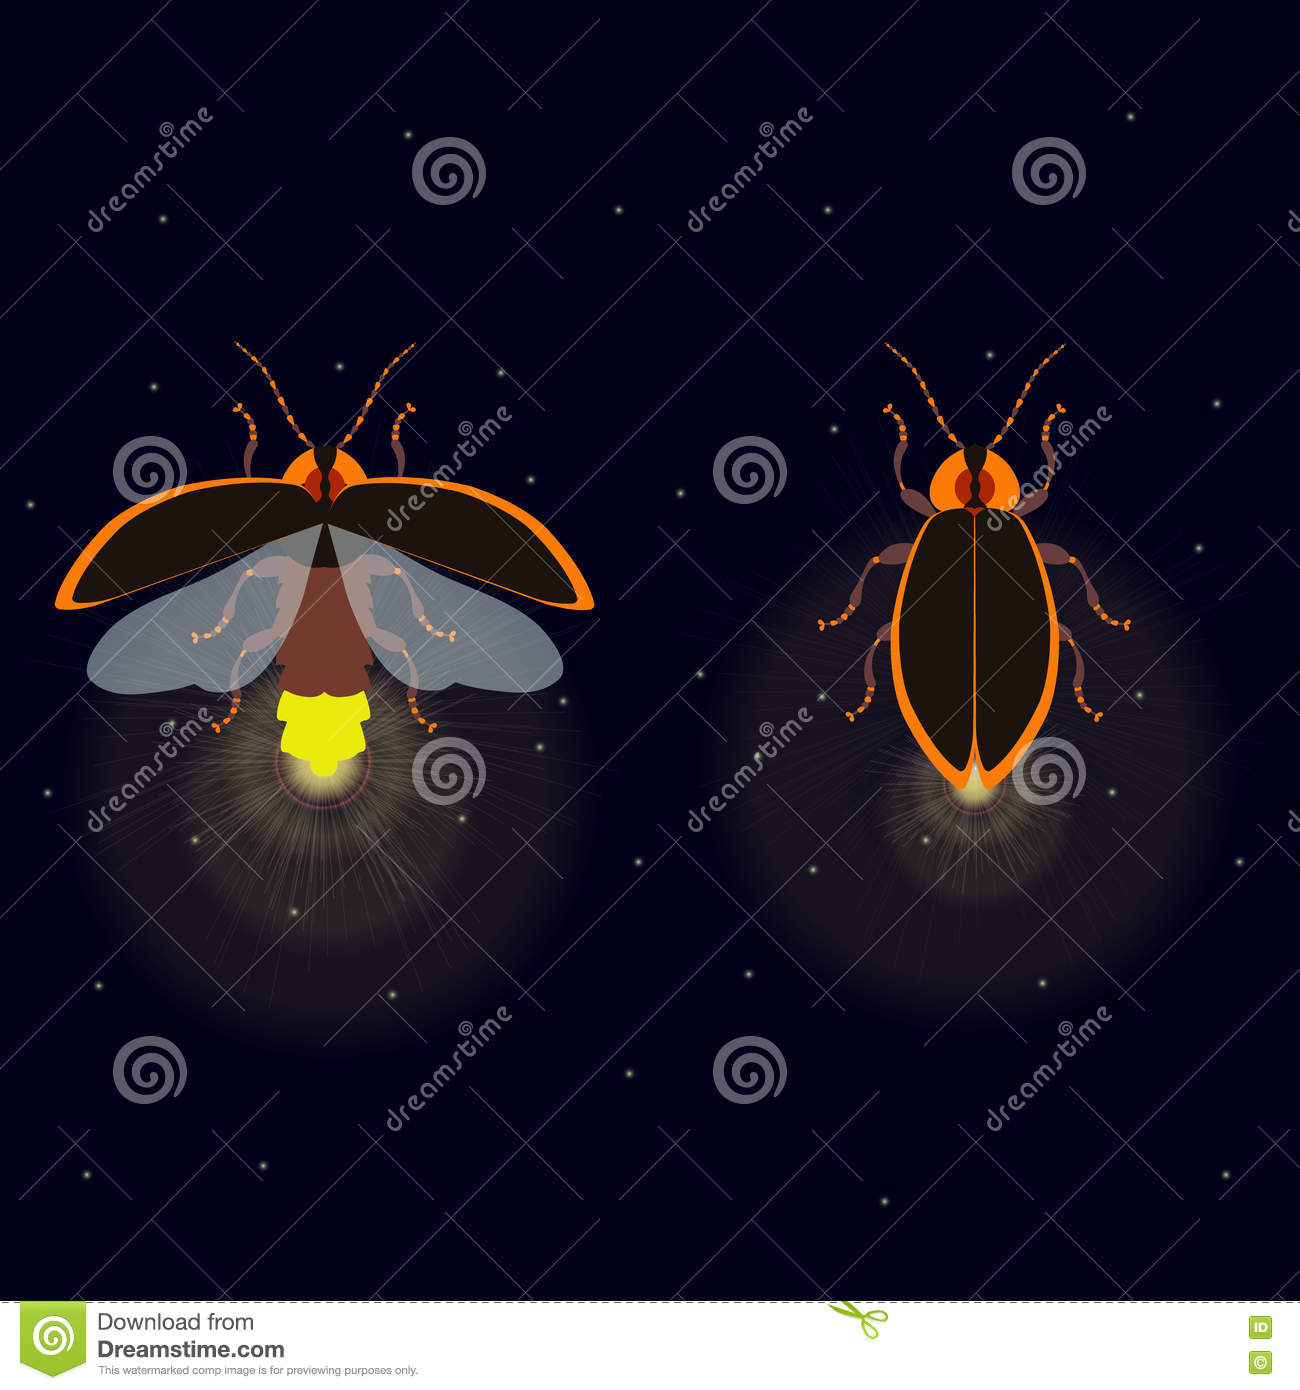 hight resolution of firefly bug with open and closed wings on dark background bug glowworm symbol luminous lightning bug illustration two fireflies glowing at night